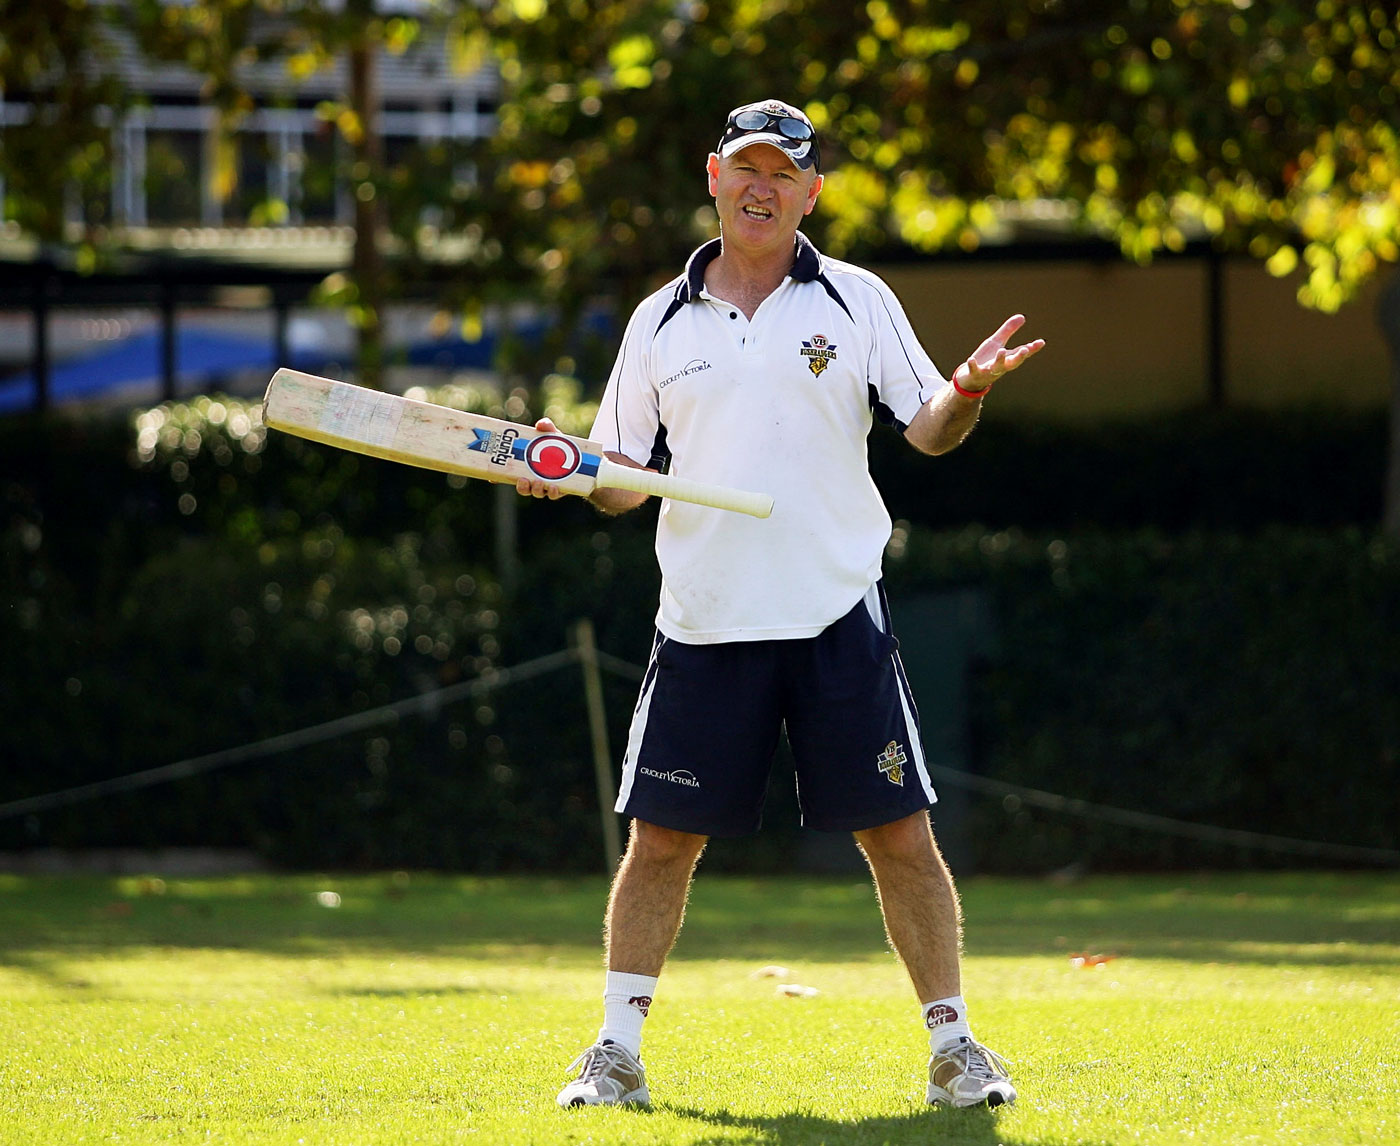 Former Victoria coach Greg Shipperd was happy to allow his players to experiment with their batting stances, coaching around it, rather than fighting it